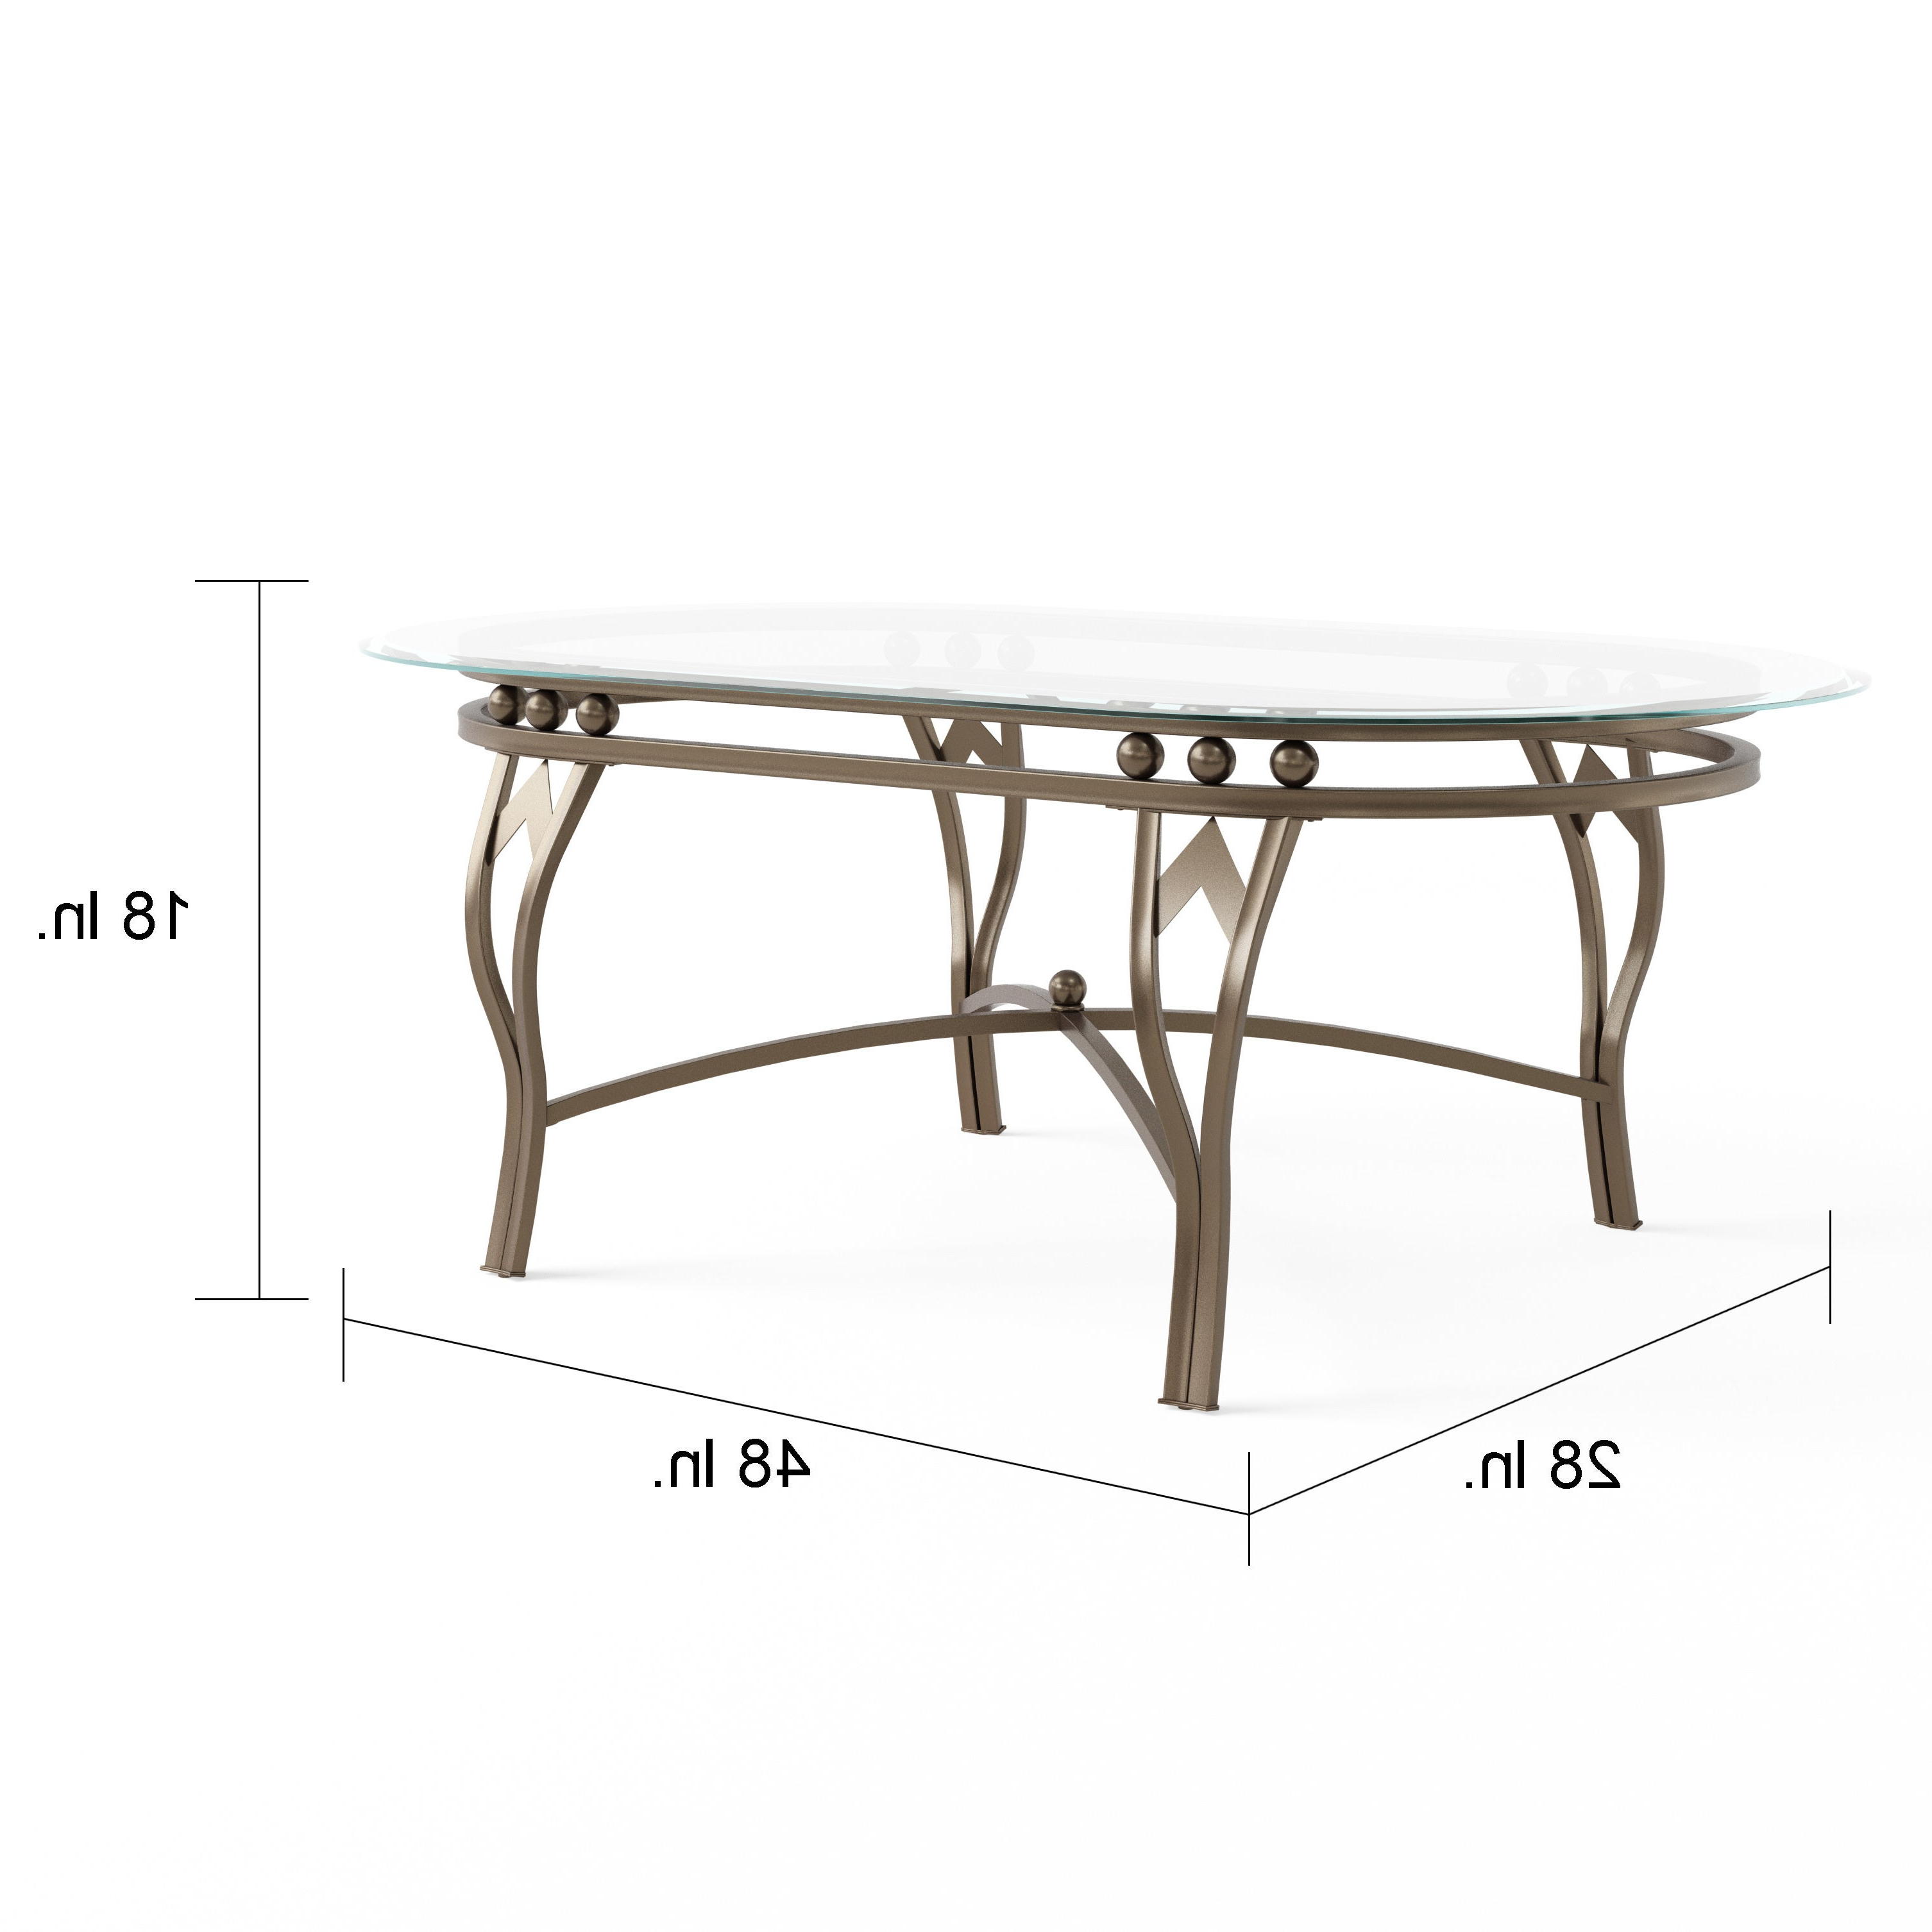 Copper Grove Woodend Glass Top Oval Coffee Table For Latest Copper Grove Woodend Glass Top Oval Coffee Tables (View 3 of 20)